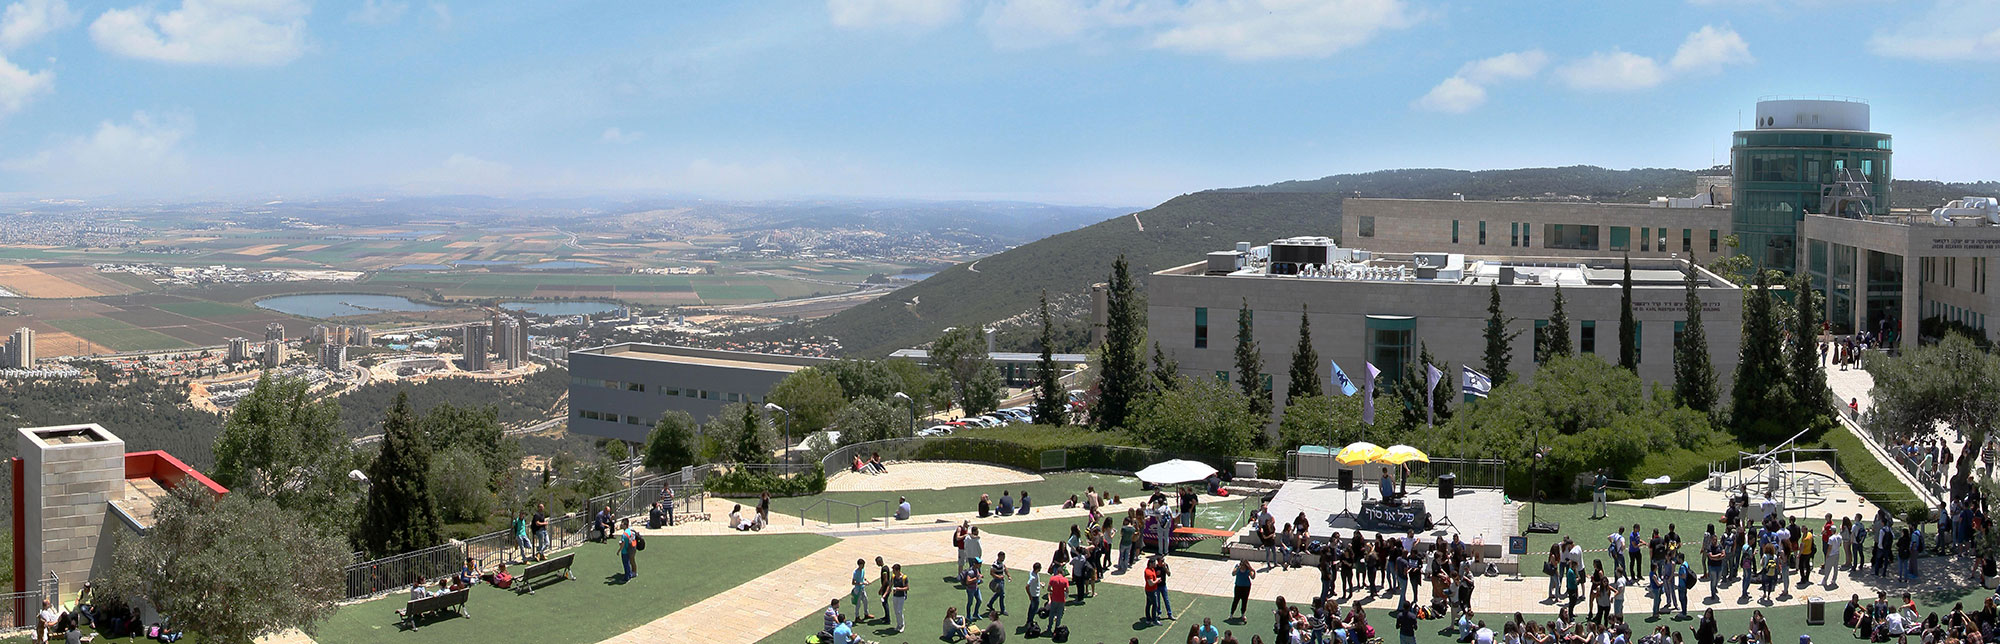 Image of University of Haifa